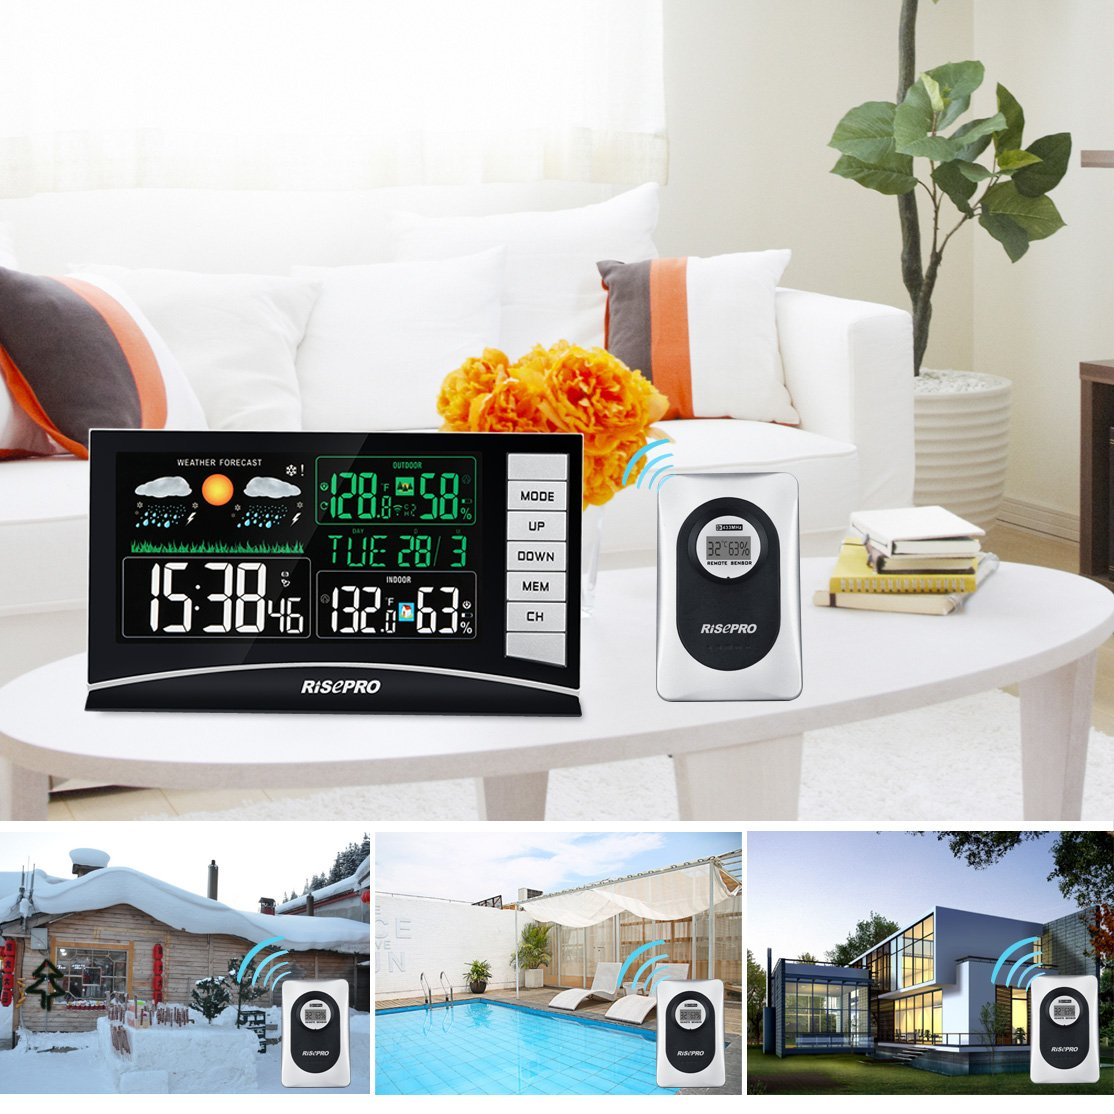 RISEPRO Weather Station, Wireless Weather Station with 3 Sensors in/Out Temperature and Humidity Alarm Clock Calendar Weather Forecaster with Color Led Display RP-WS2003 by RISEPRO (Image #5)